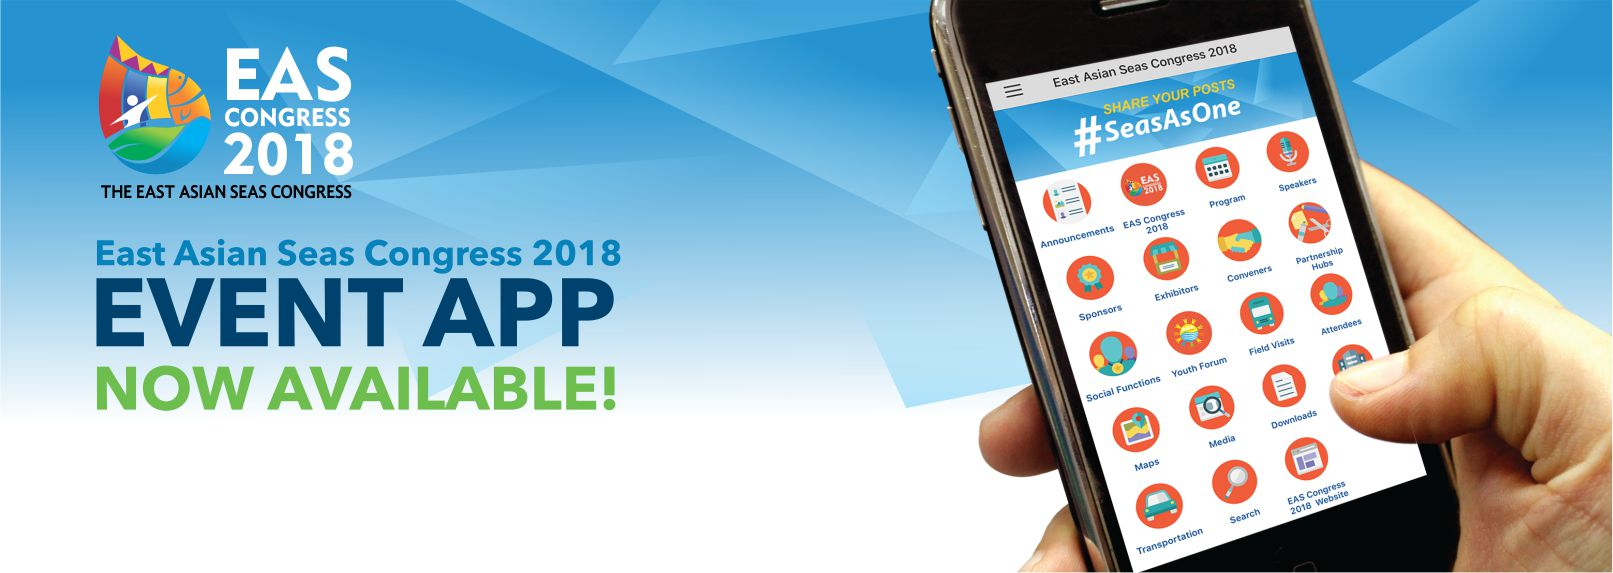 East Asian Seas Congress Mobile App Now Available!